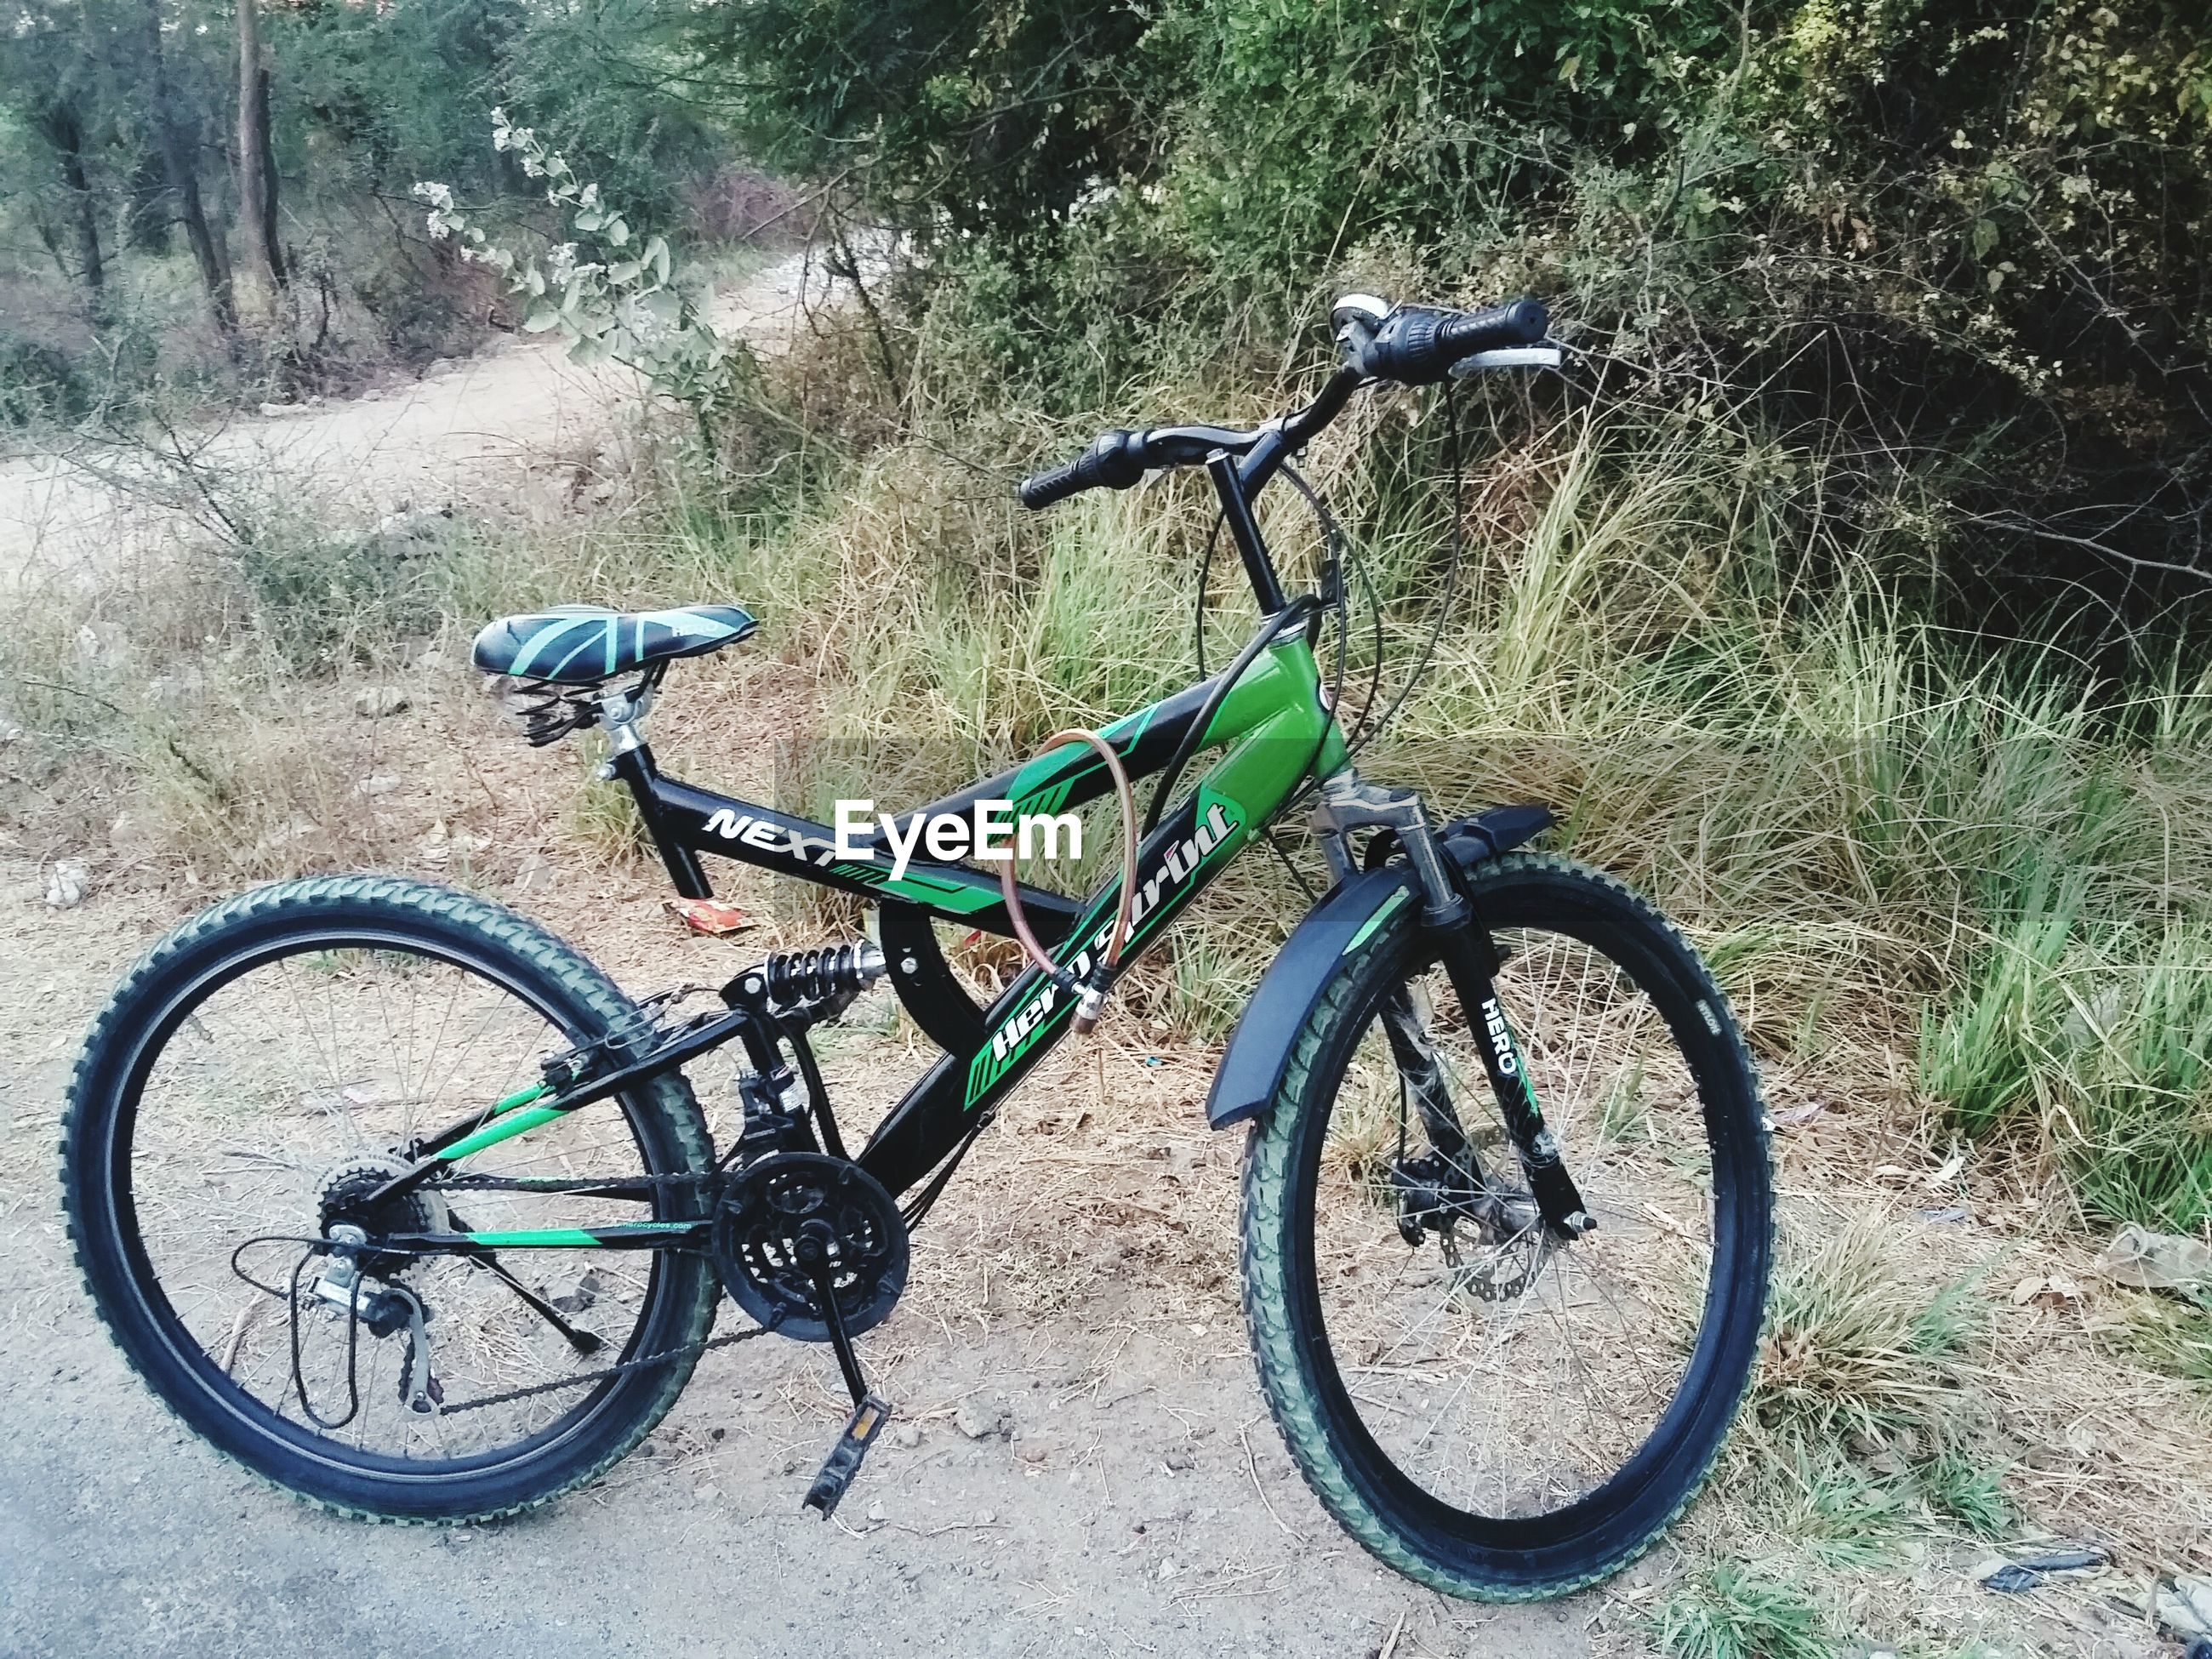 bicycle, transportation, mode of transport, land vehicle, stationary, parked, parking, cycle, side view, travel, day, riding, no people, outdoors, wheel, street, tree, road, bicycle basket, motorcycle